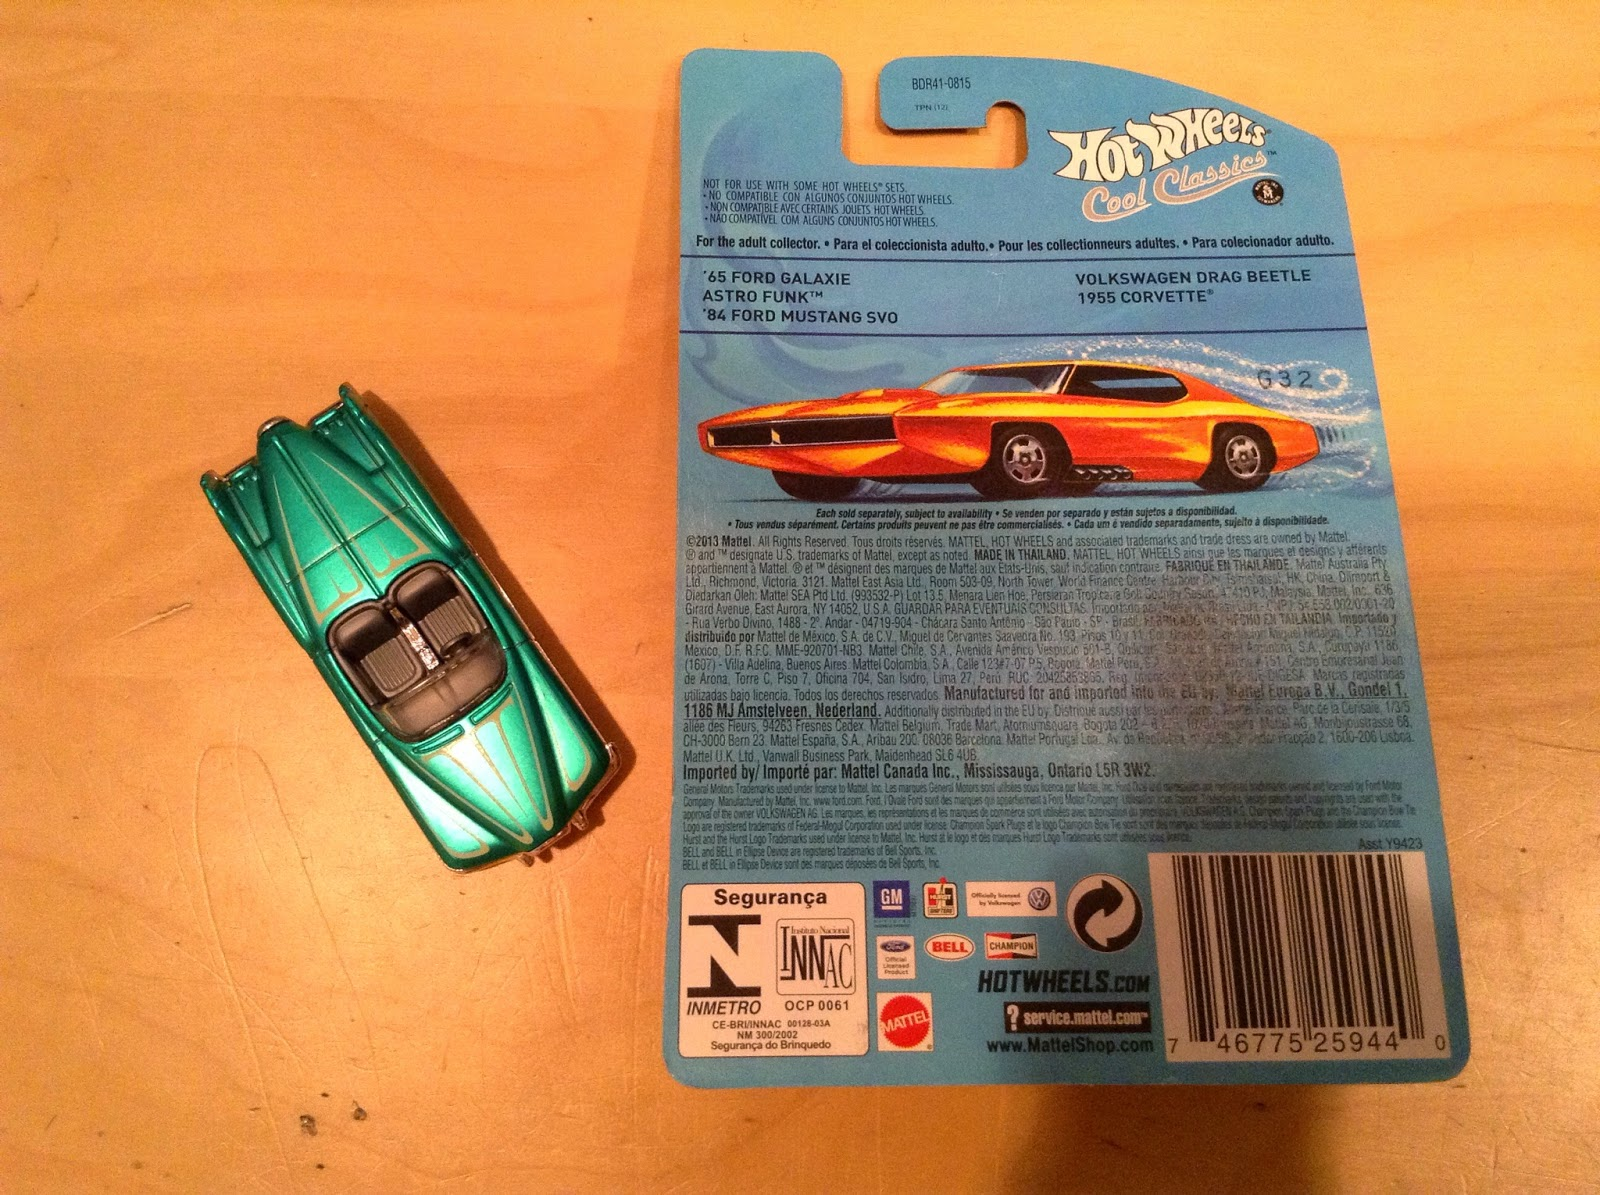 Julians Hot Wheels Blog 51 Buick Lesabre Concept 1955 Corvette And As An Additional Note The Was My First Cool Classics Cars Its A Sweet Casting